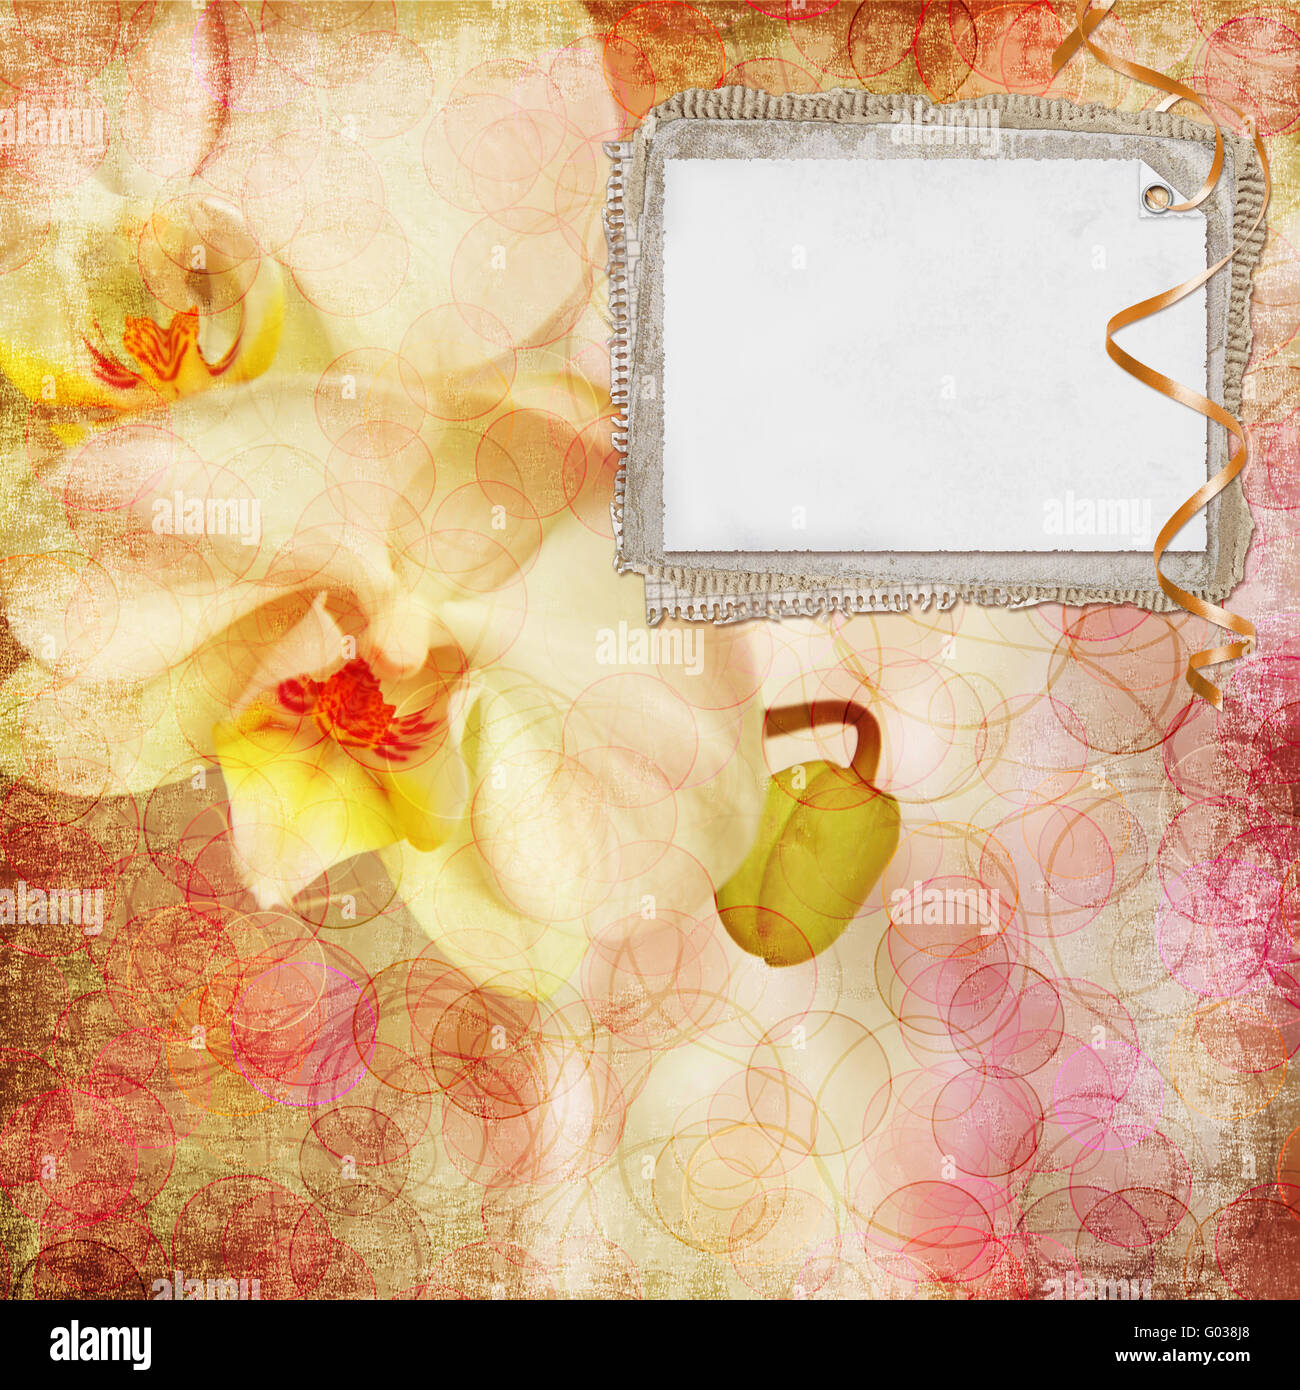 Floral greeting card with place for your text. - Stock Image